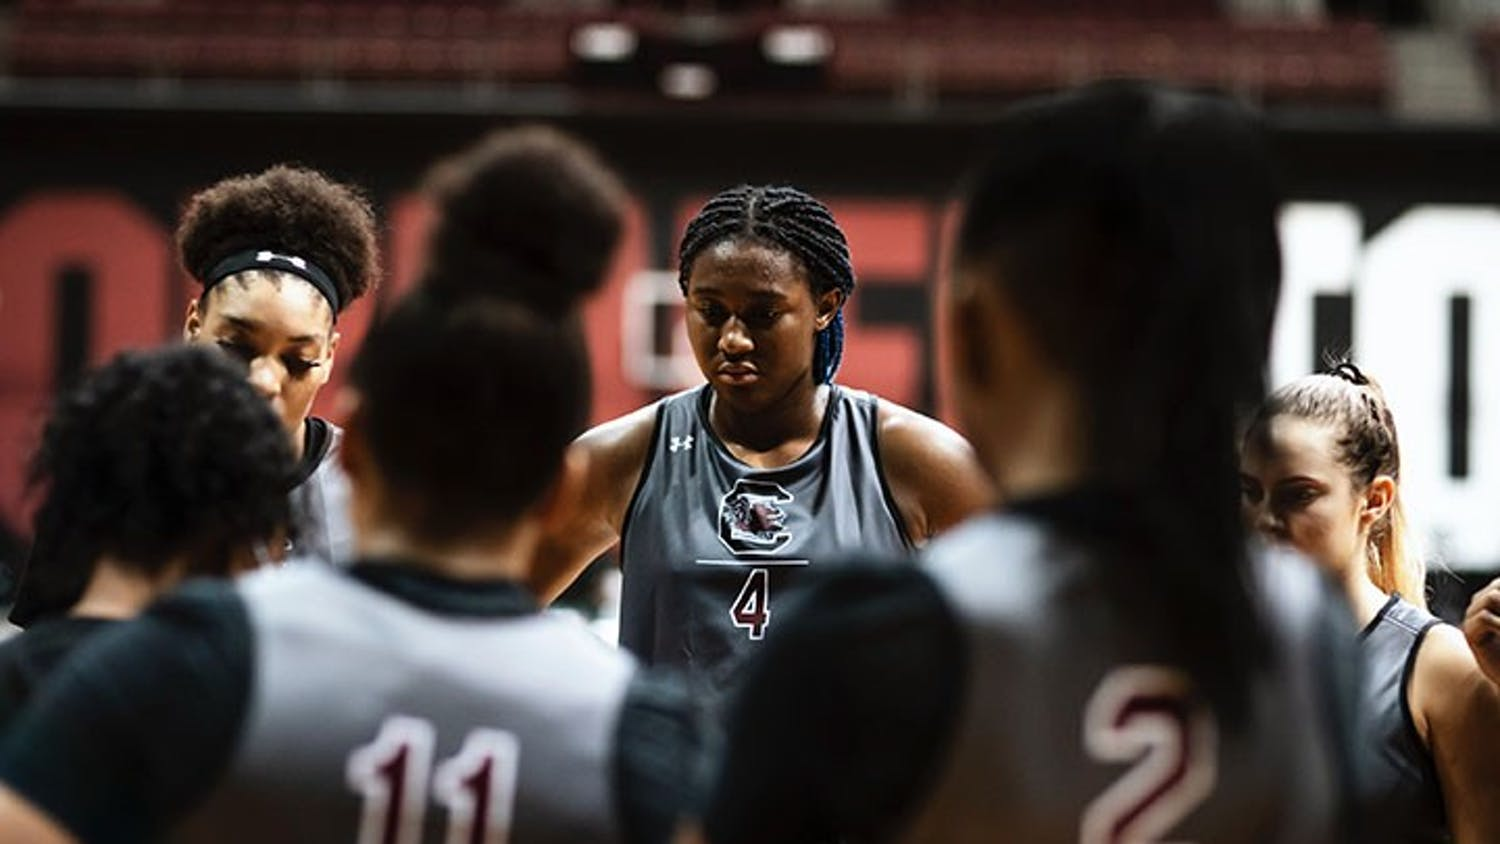 Sophomore forward Aliyah Boston stands in a huddle with her fellow teammates during the first official practice of the season.